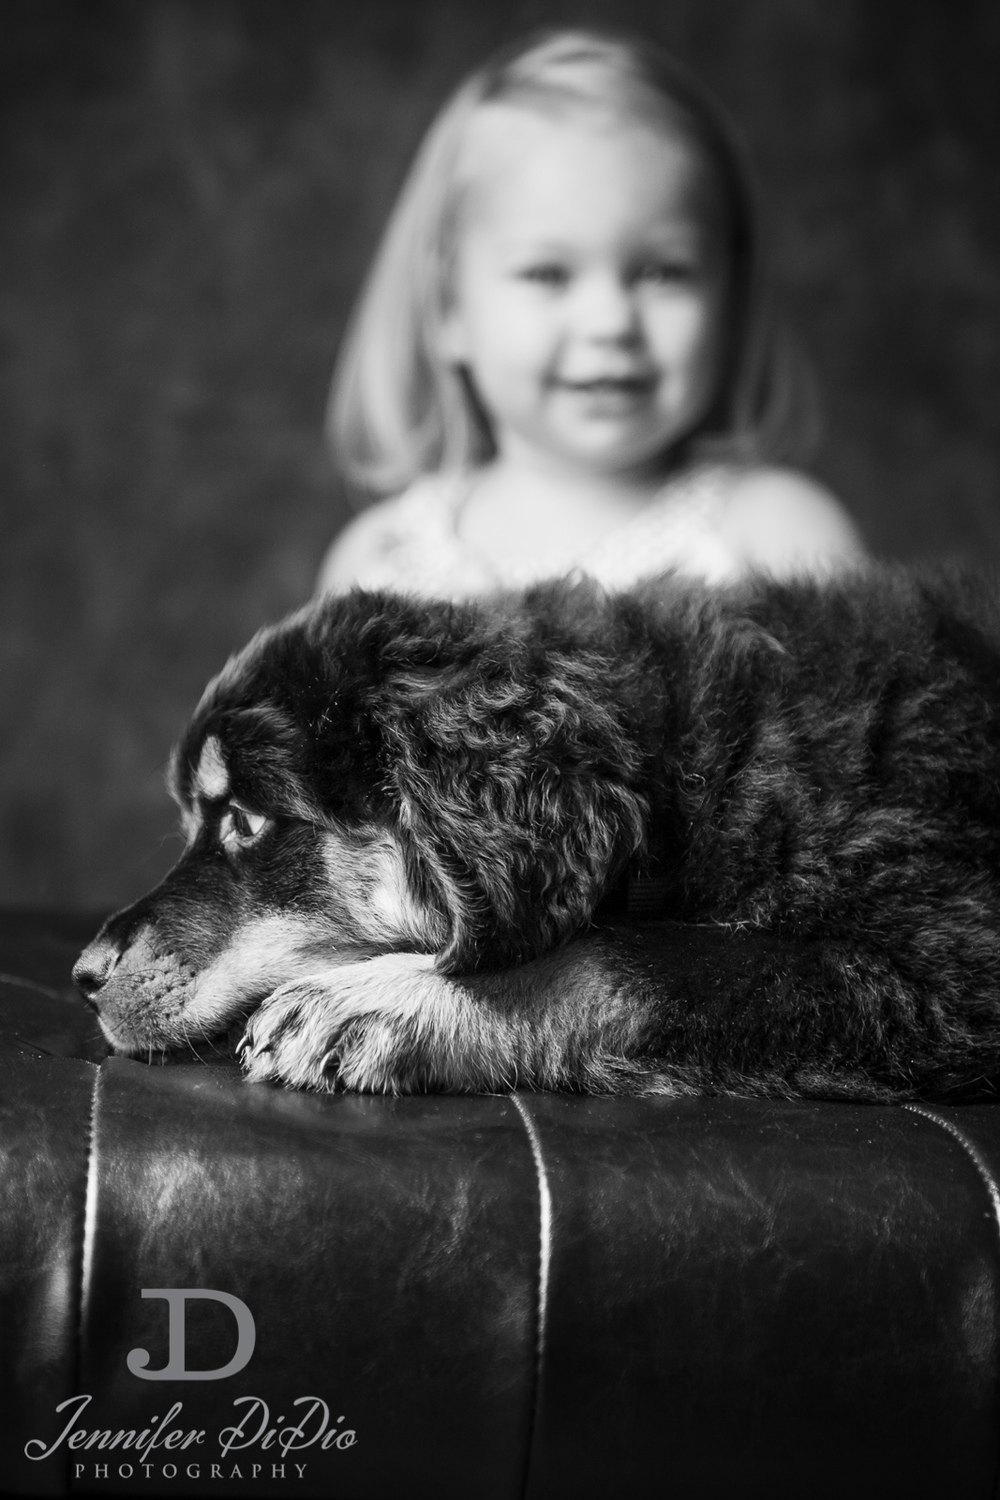 Jennifer.DiDio.Photography.puppy.Stone.Ruby.Madeline-125.jpg